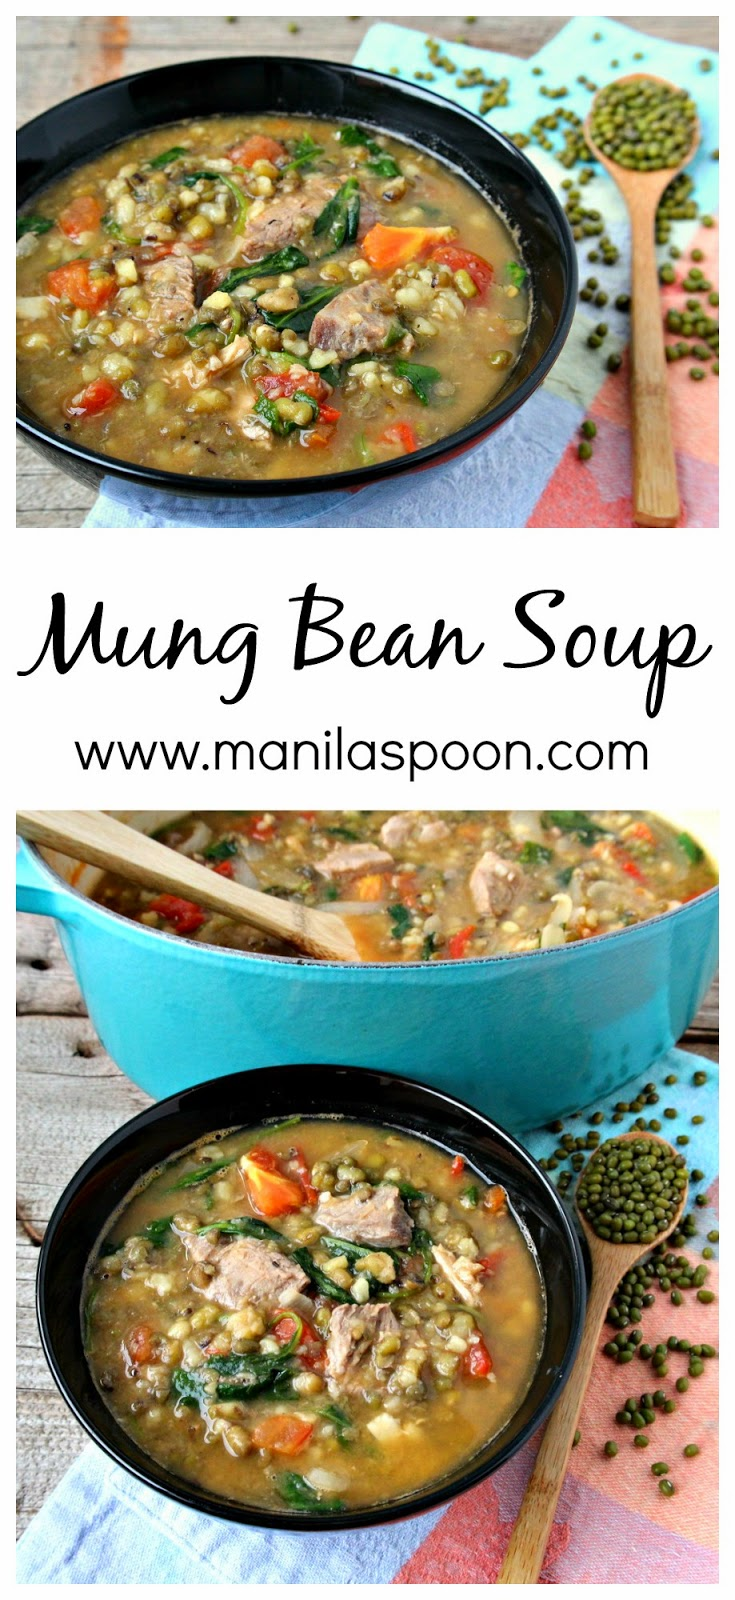 With beans, spinach, tomatoes and meat this hearty and healthy Mung Bean soup is filling and delicious!